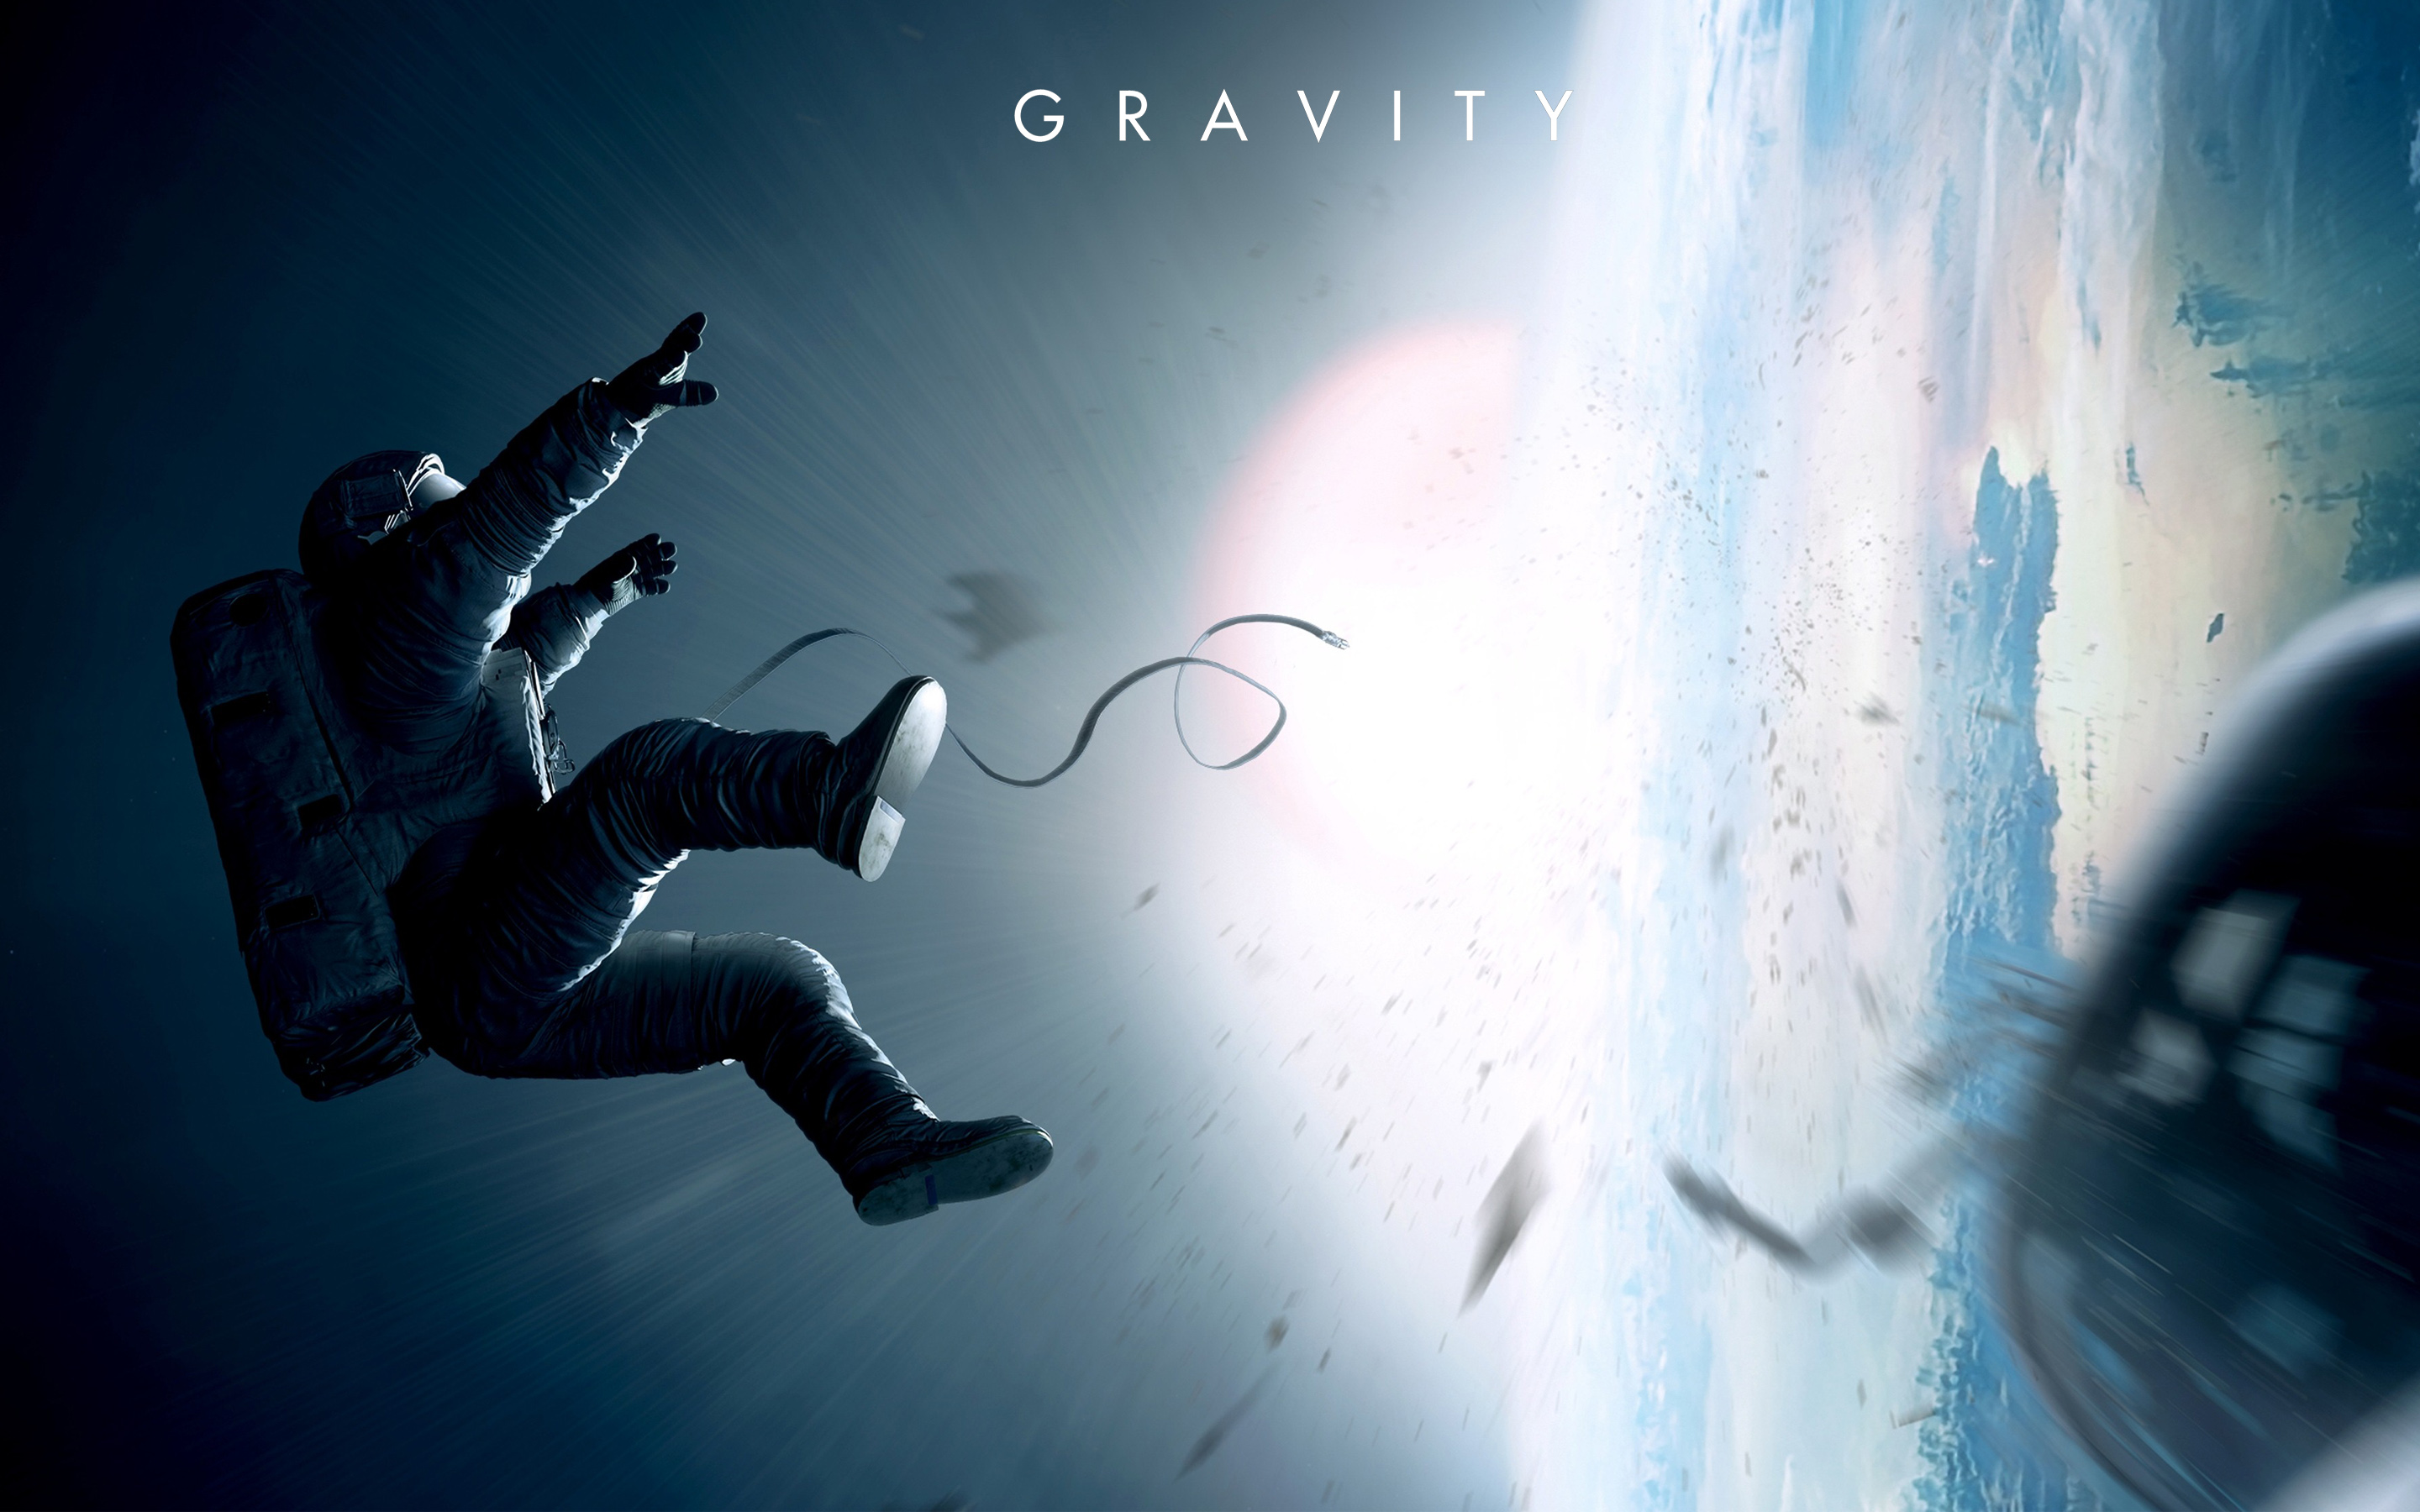 2013 Gravity Movie Wallpapers HD Wallpapers 2880x1800